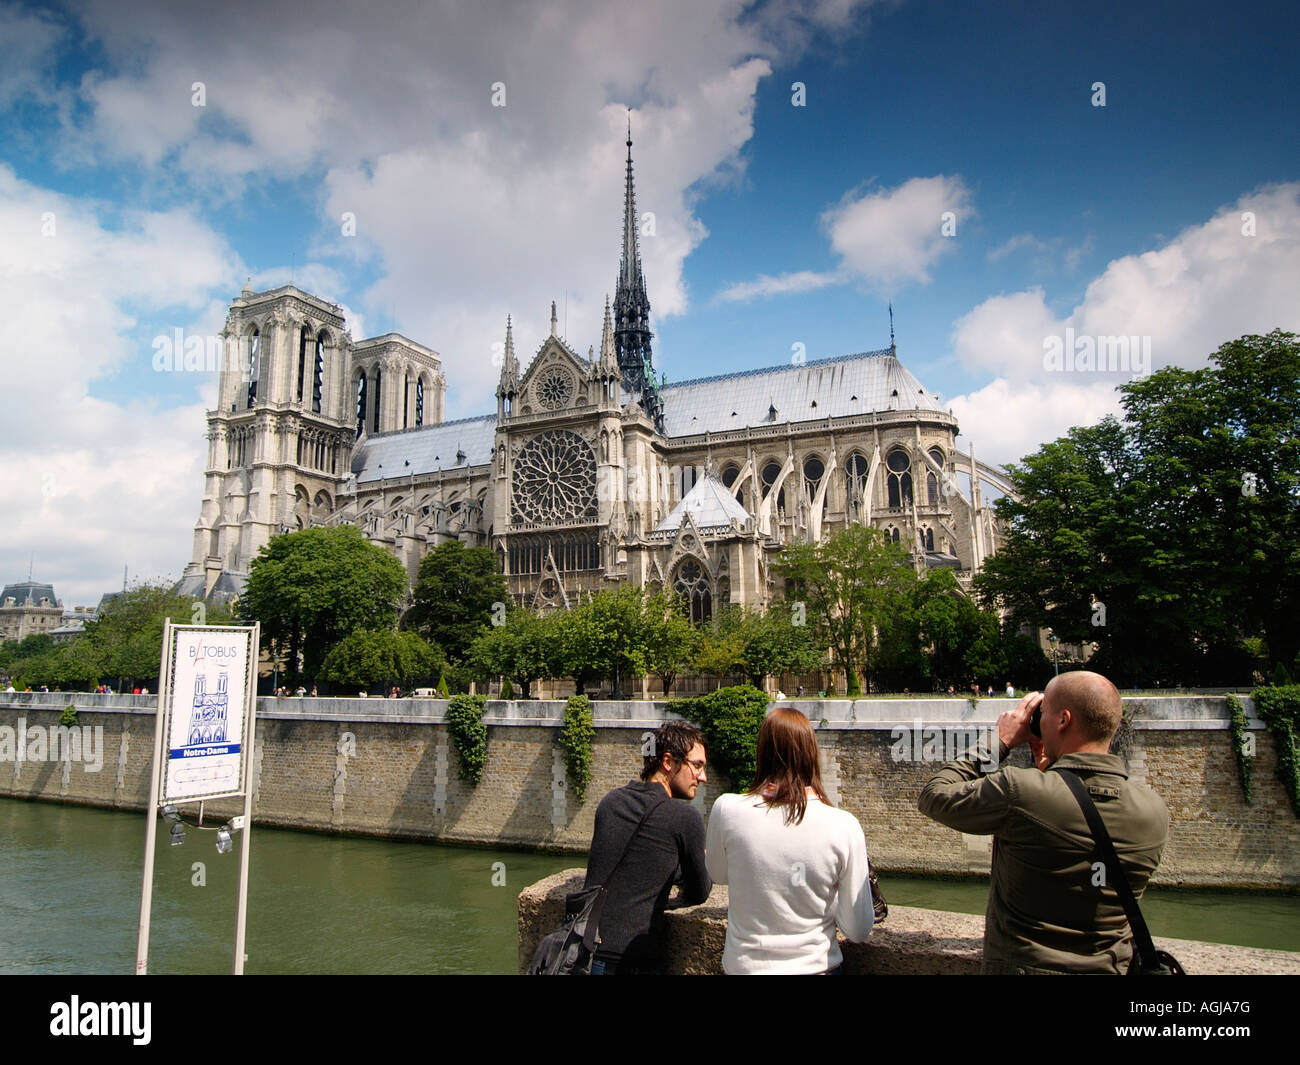 Tourists at the Notre Dame cathedral in Paris France Stock Photo